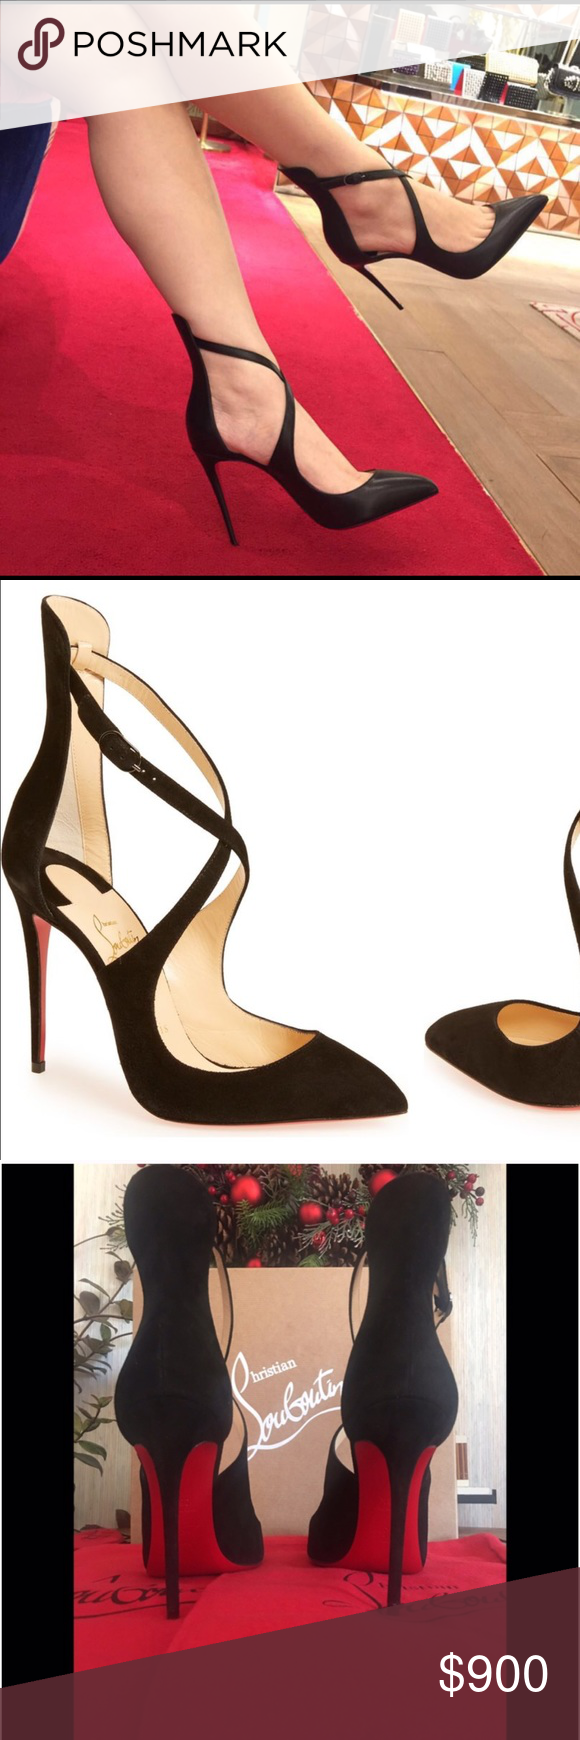 679db356010 Christian Louboutin Marlenarock Pumps Brand New With Box and ...